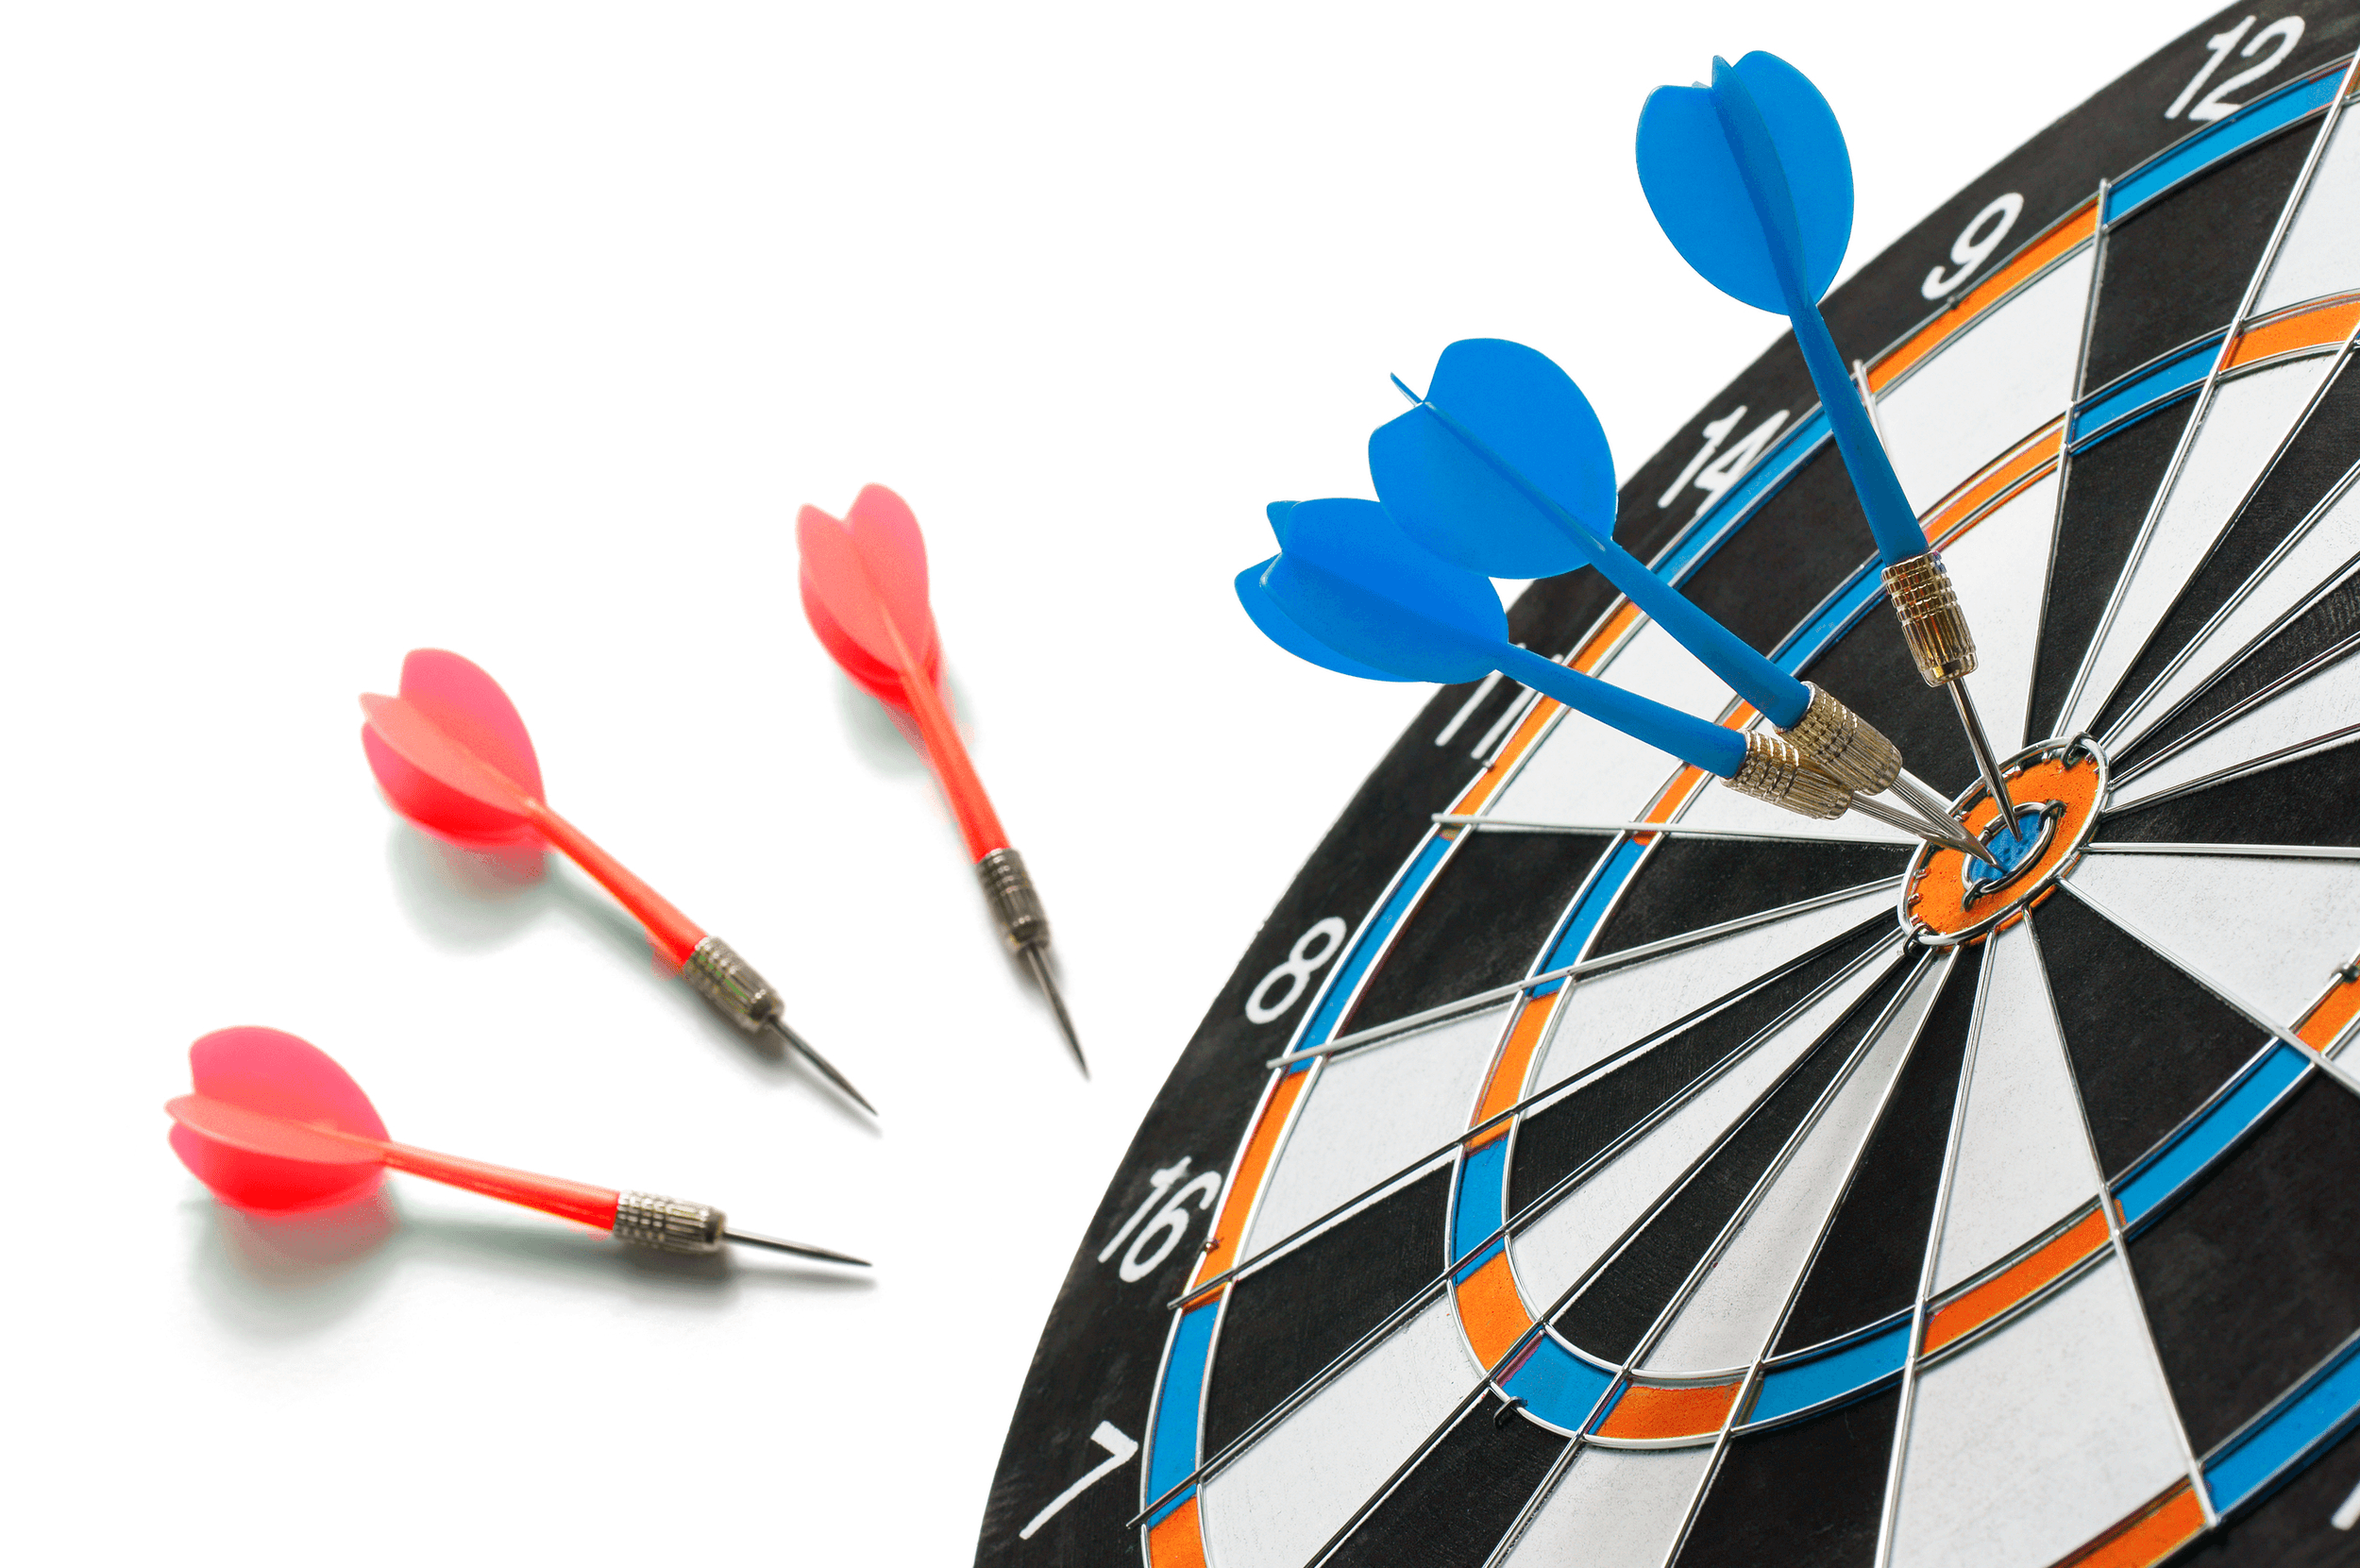 Dart Board with Blue and Red Darts